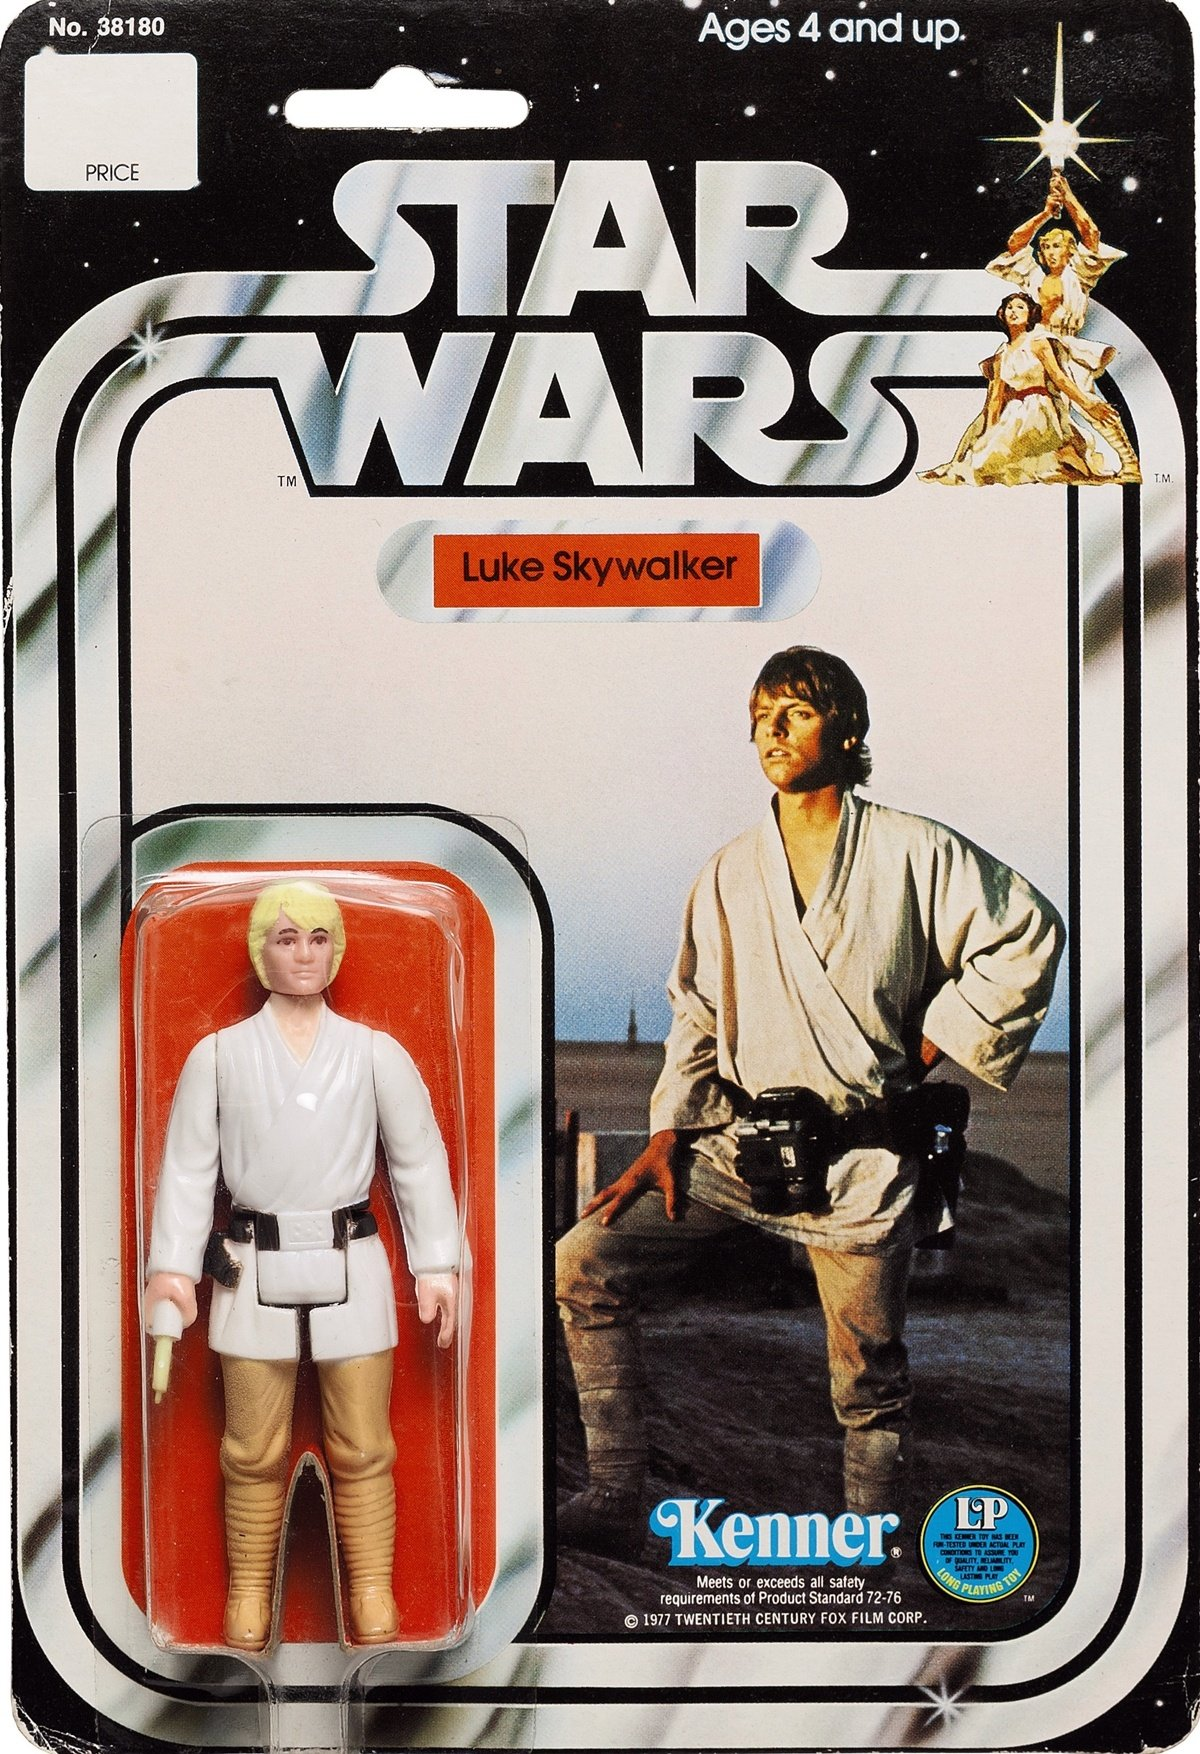 2 12 10 Star Wars Toys That Will Earn You A Fortune!